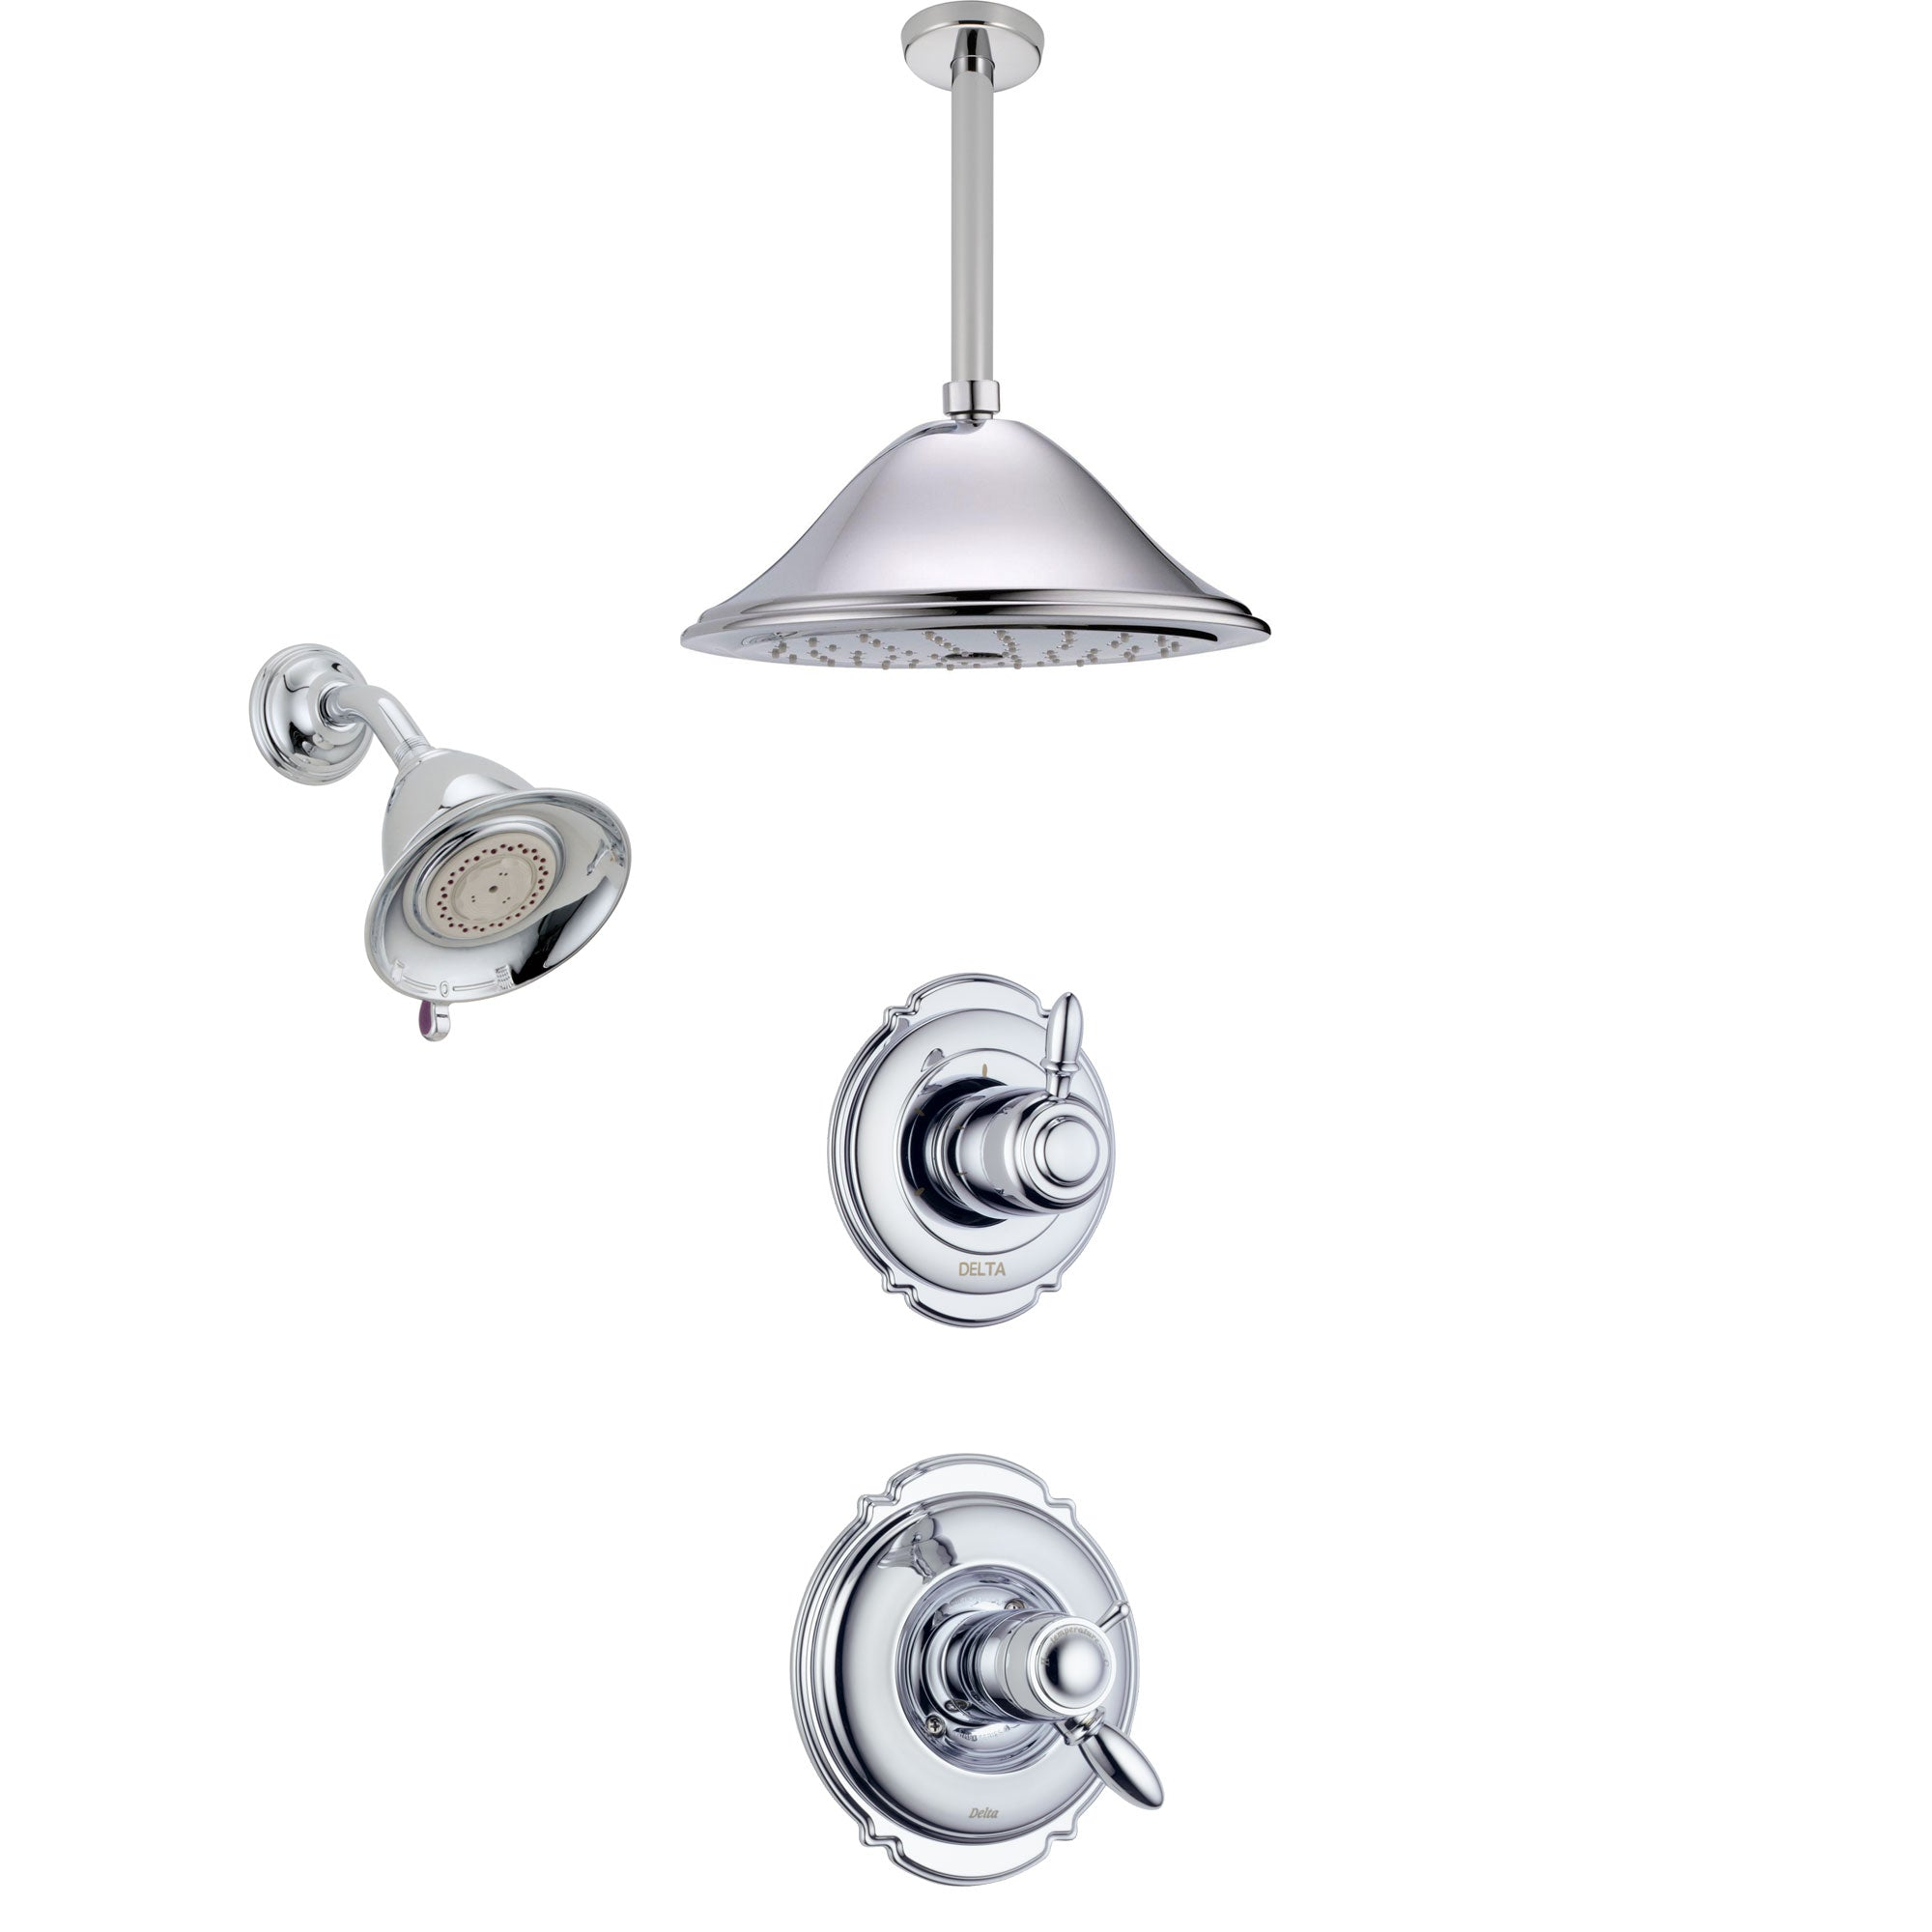 Delta Victorian Chrome Finish Shower System with Dual Thermostatic Control Handle, Diverter, Showerhead, and Ceiling Mount Showerhead SS17T25515